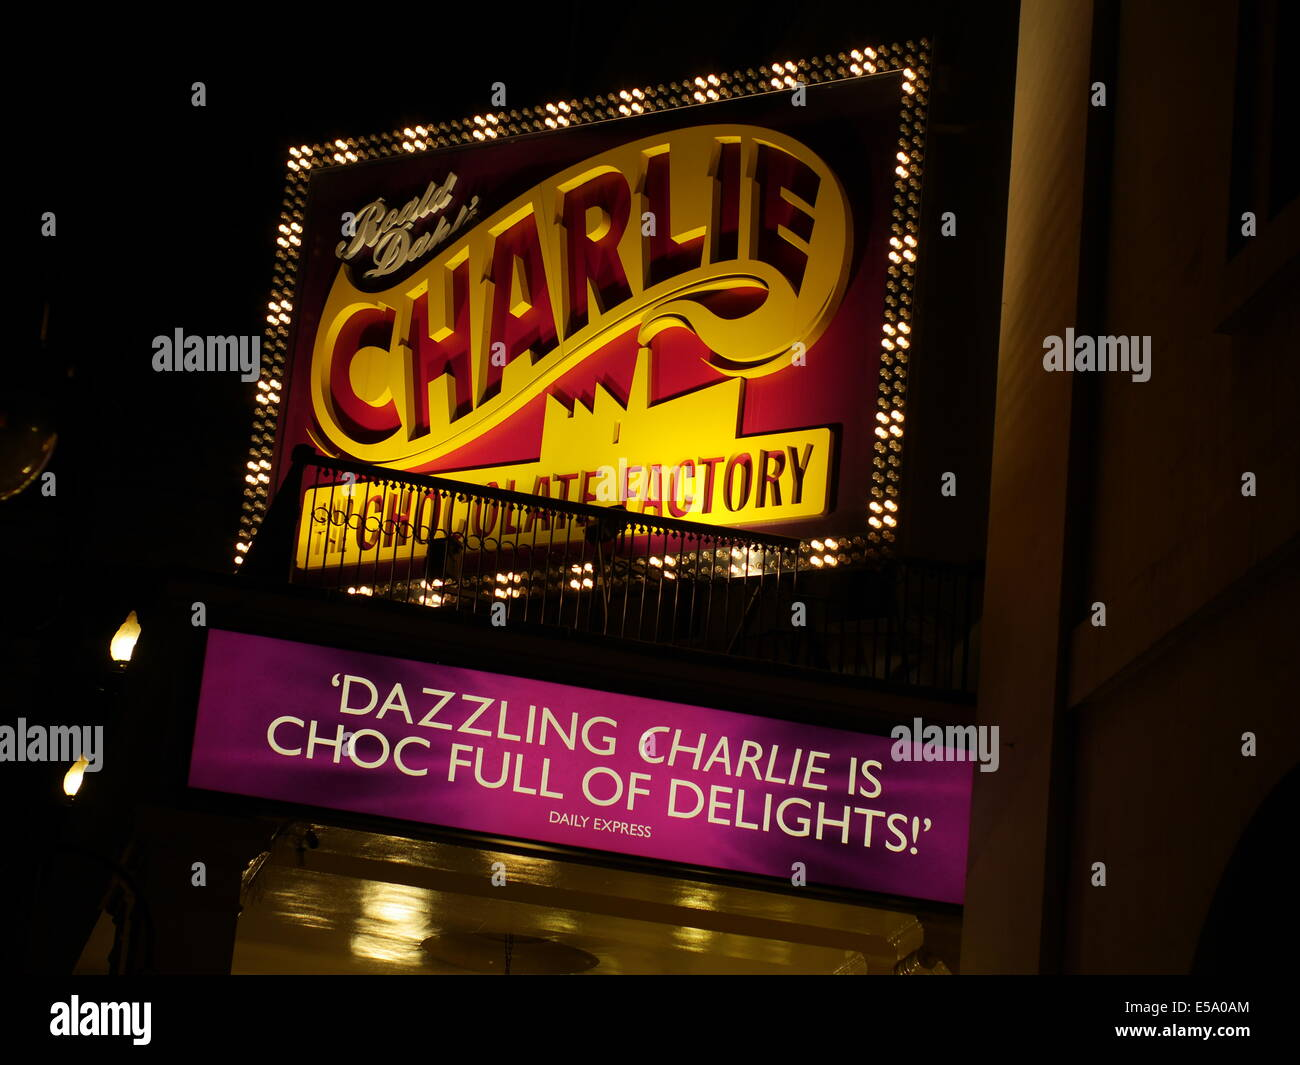 Charlie and the Chocolate factory, The Theatre Royal, Drury Lane, - Stock Image